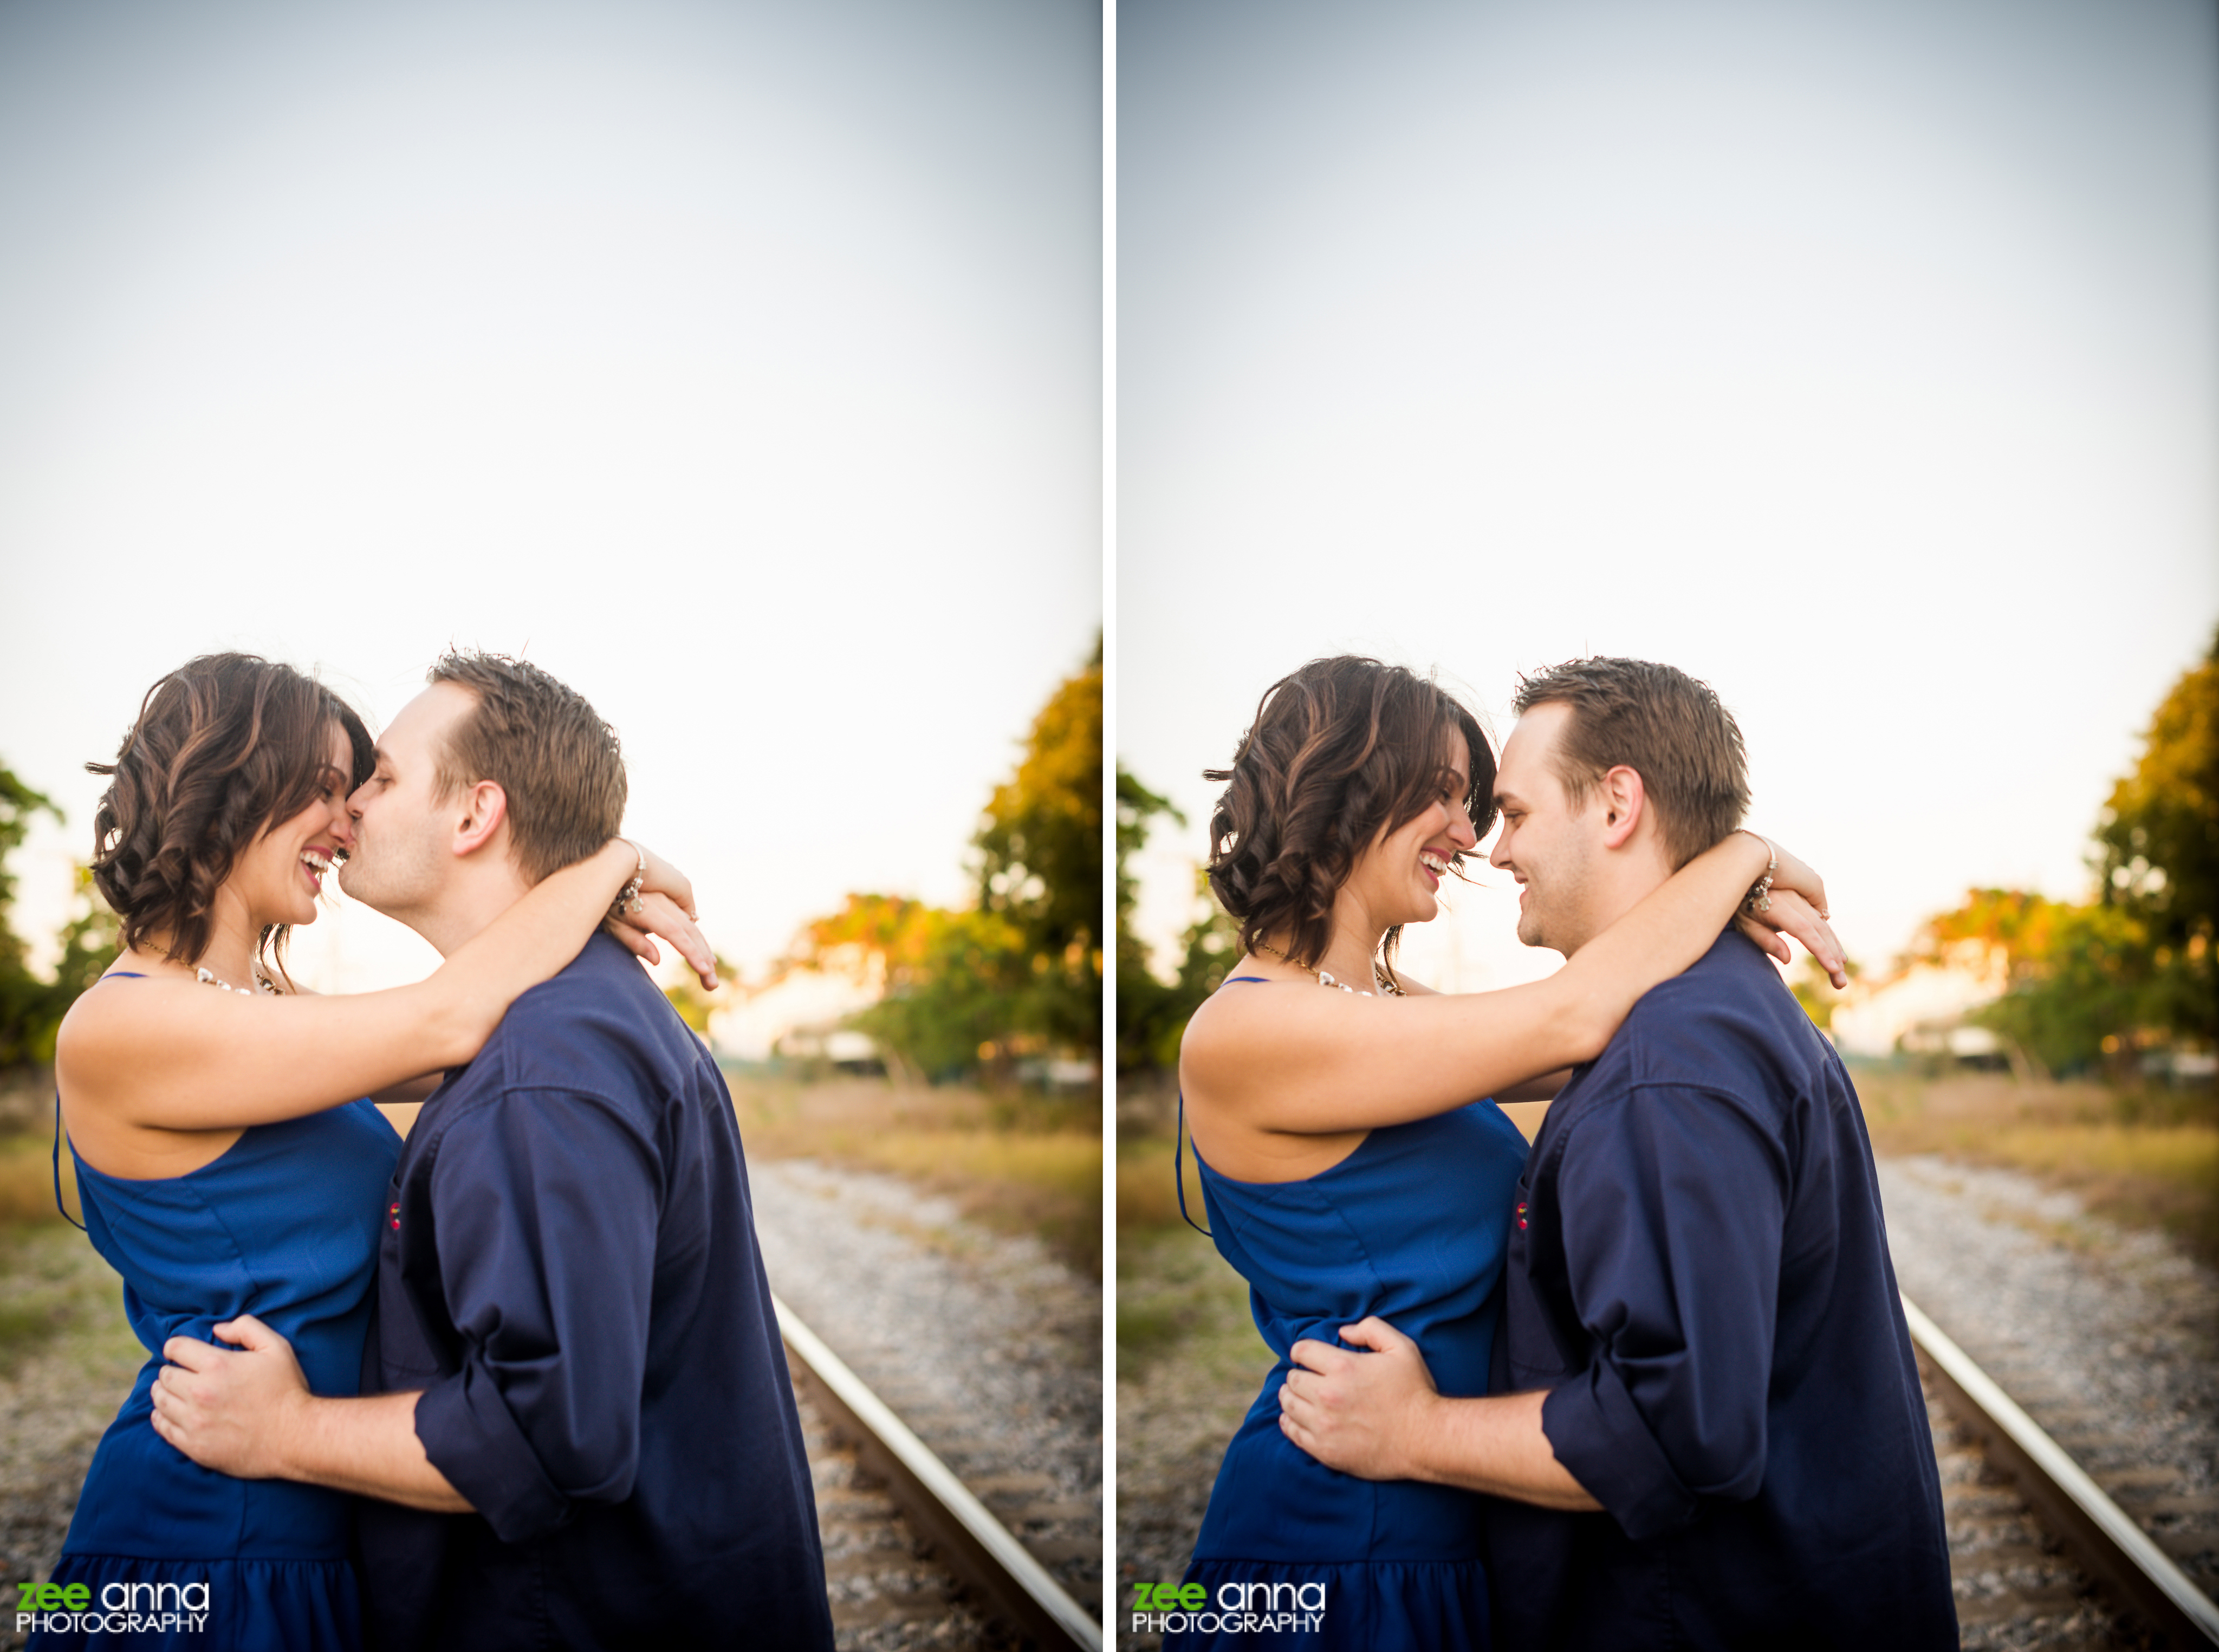 Jason+Tabitha-Engagement_01122014_130-130